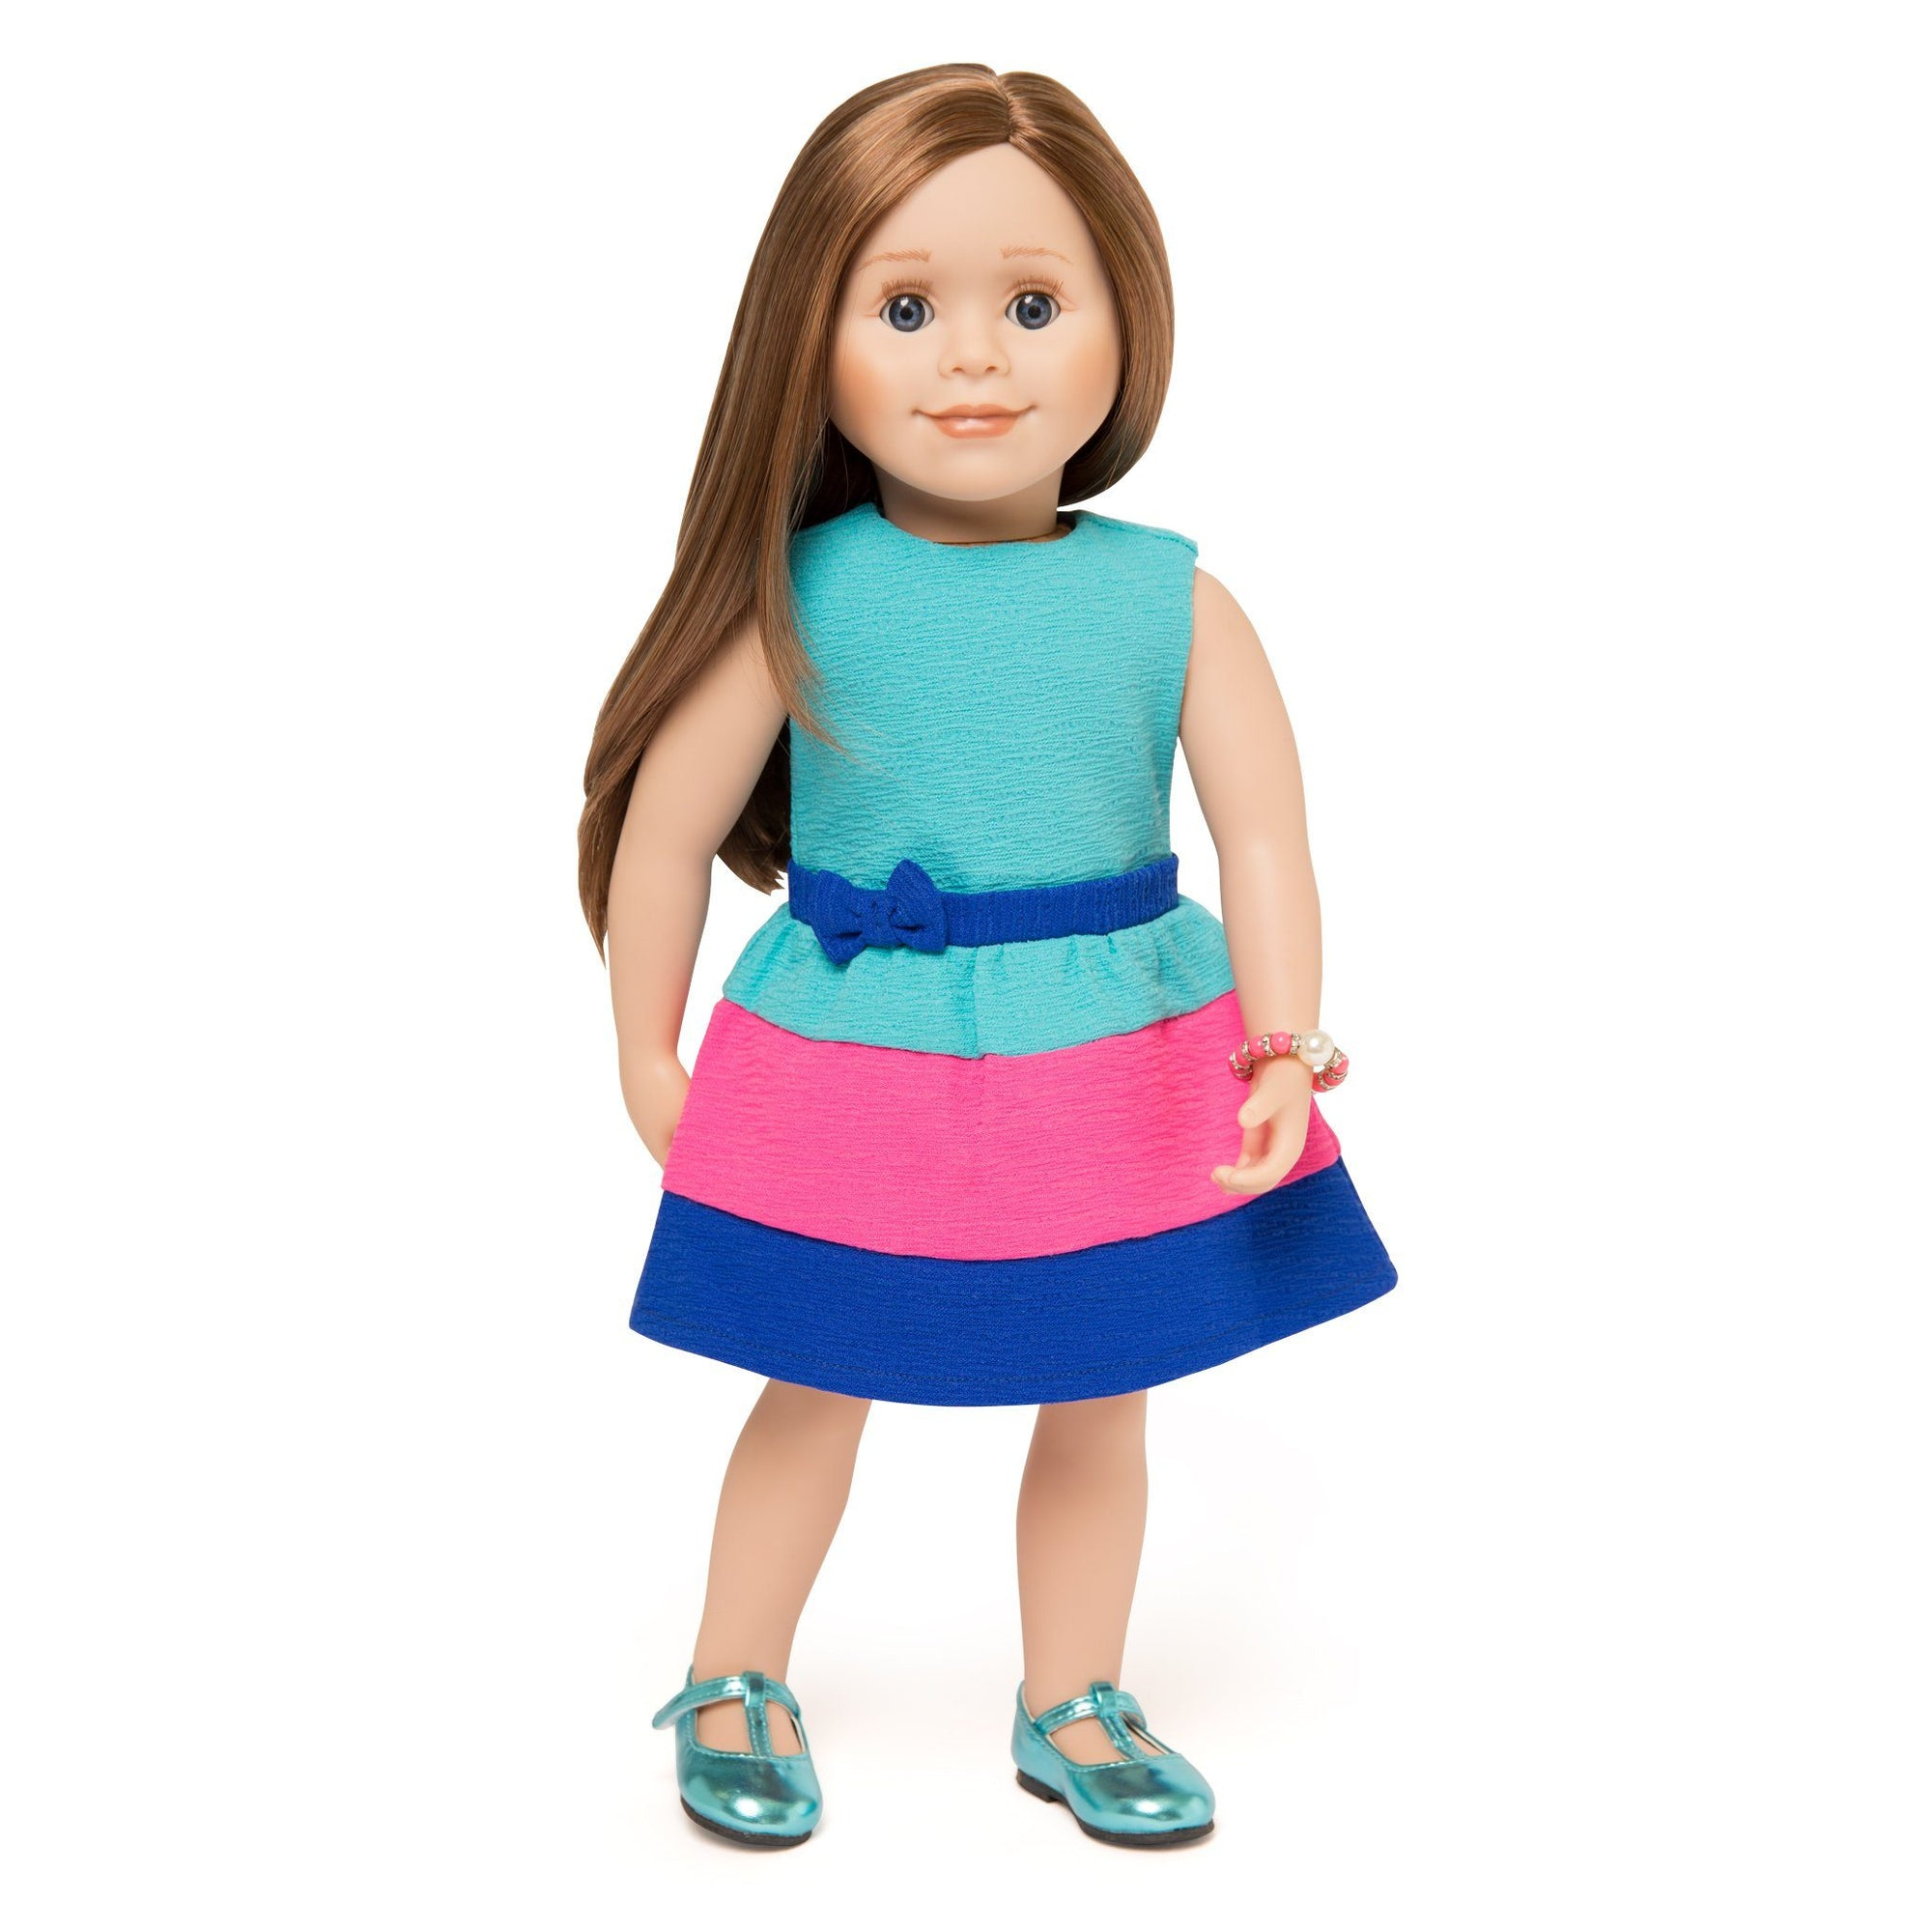 Colourblock summer dress with bracelet and blue shoes on 18 inch doll by Maplelea.